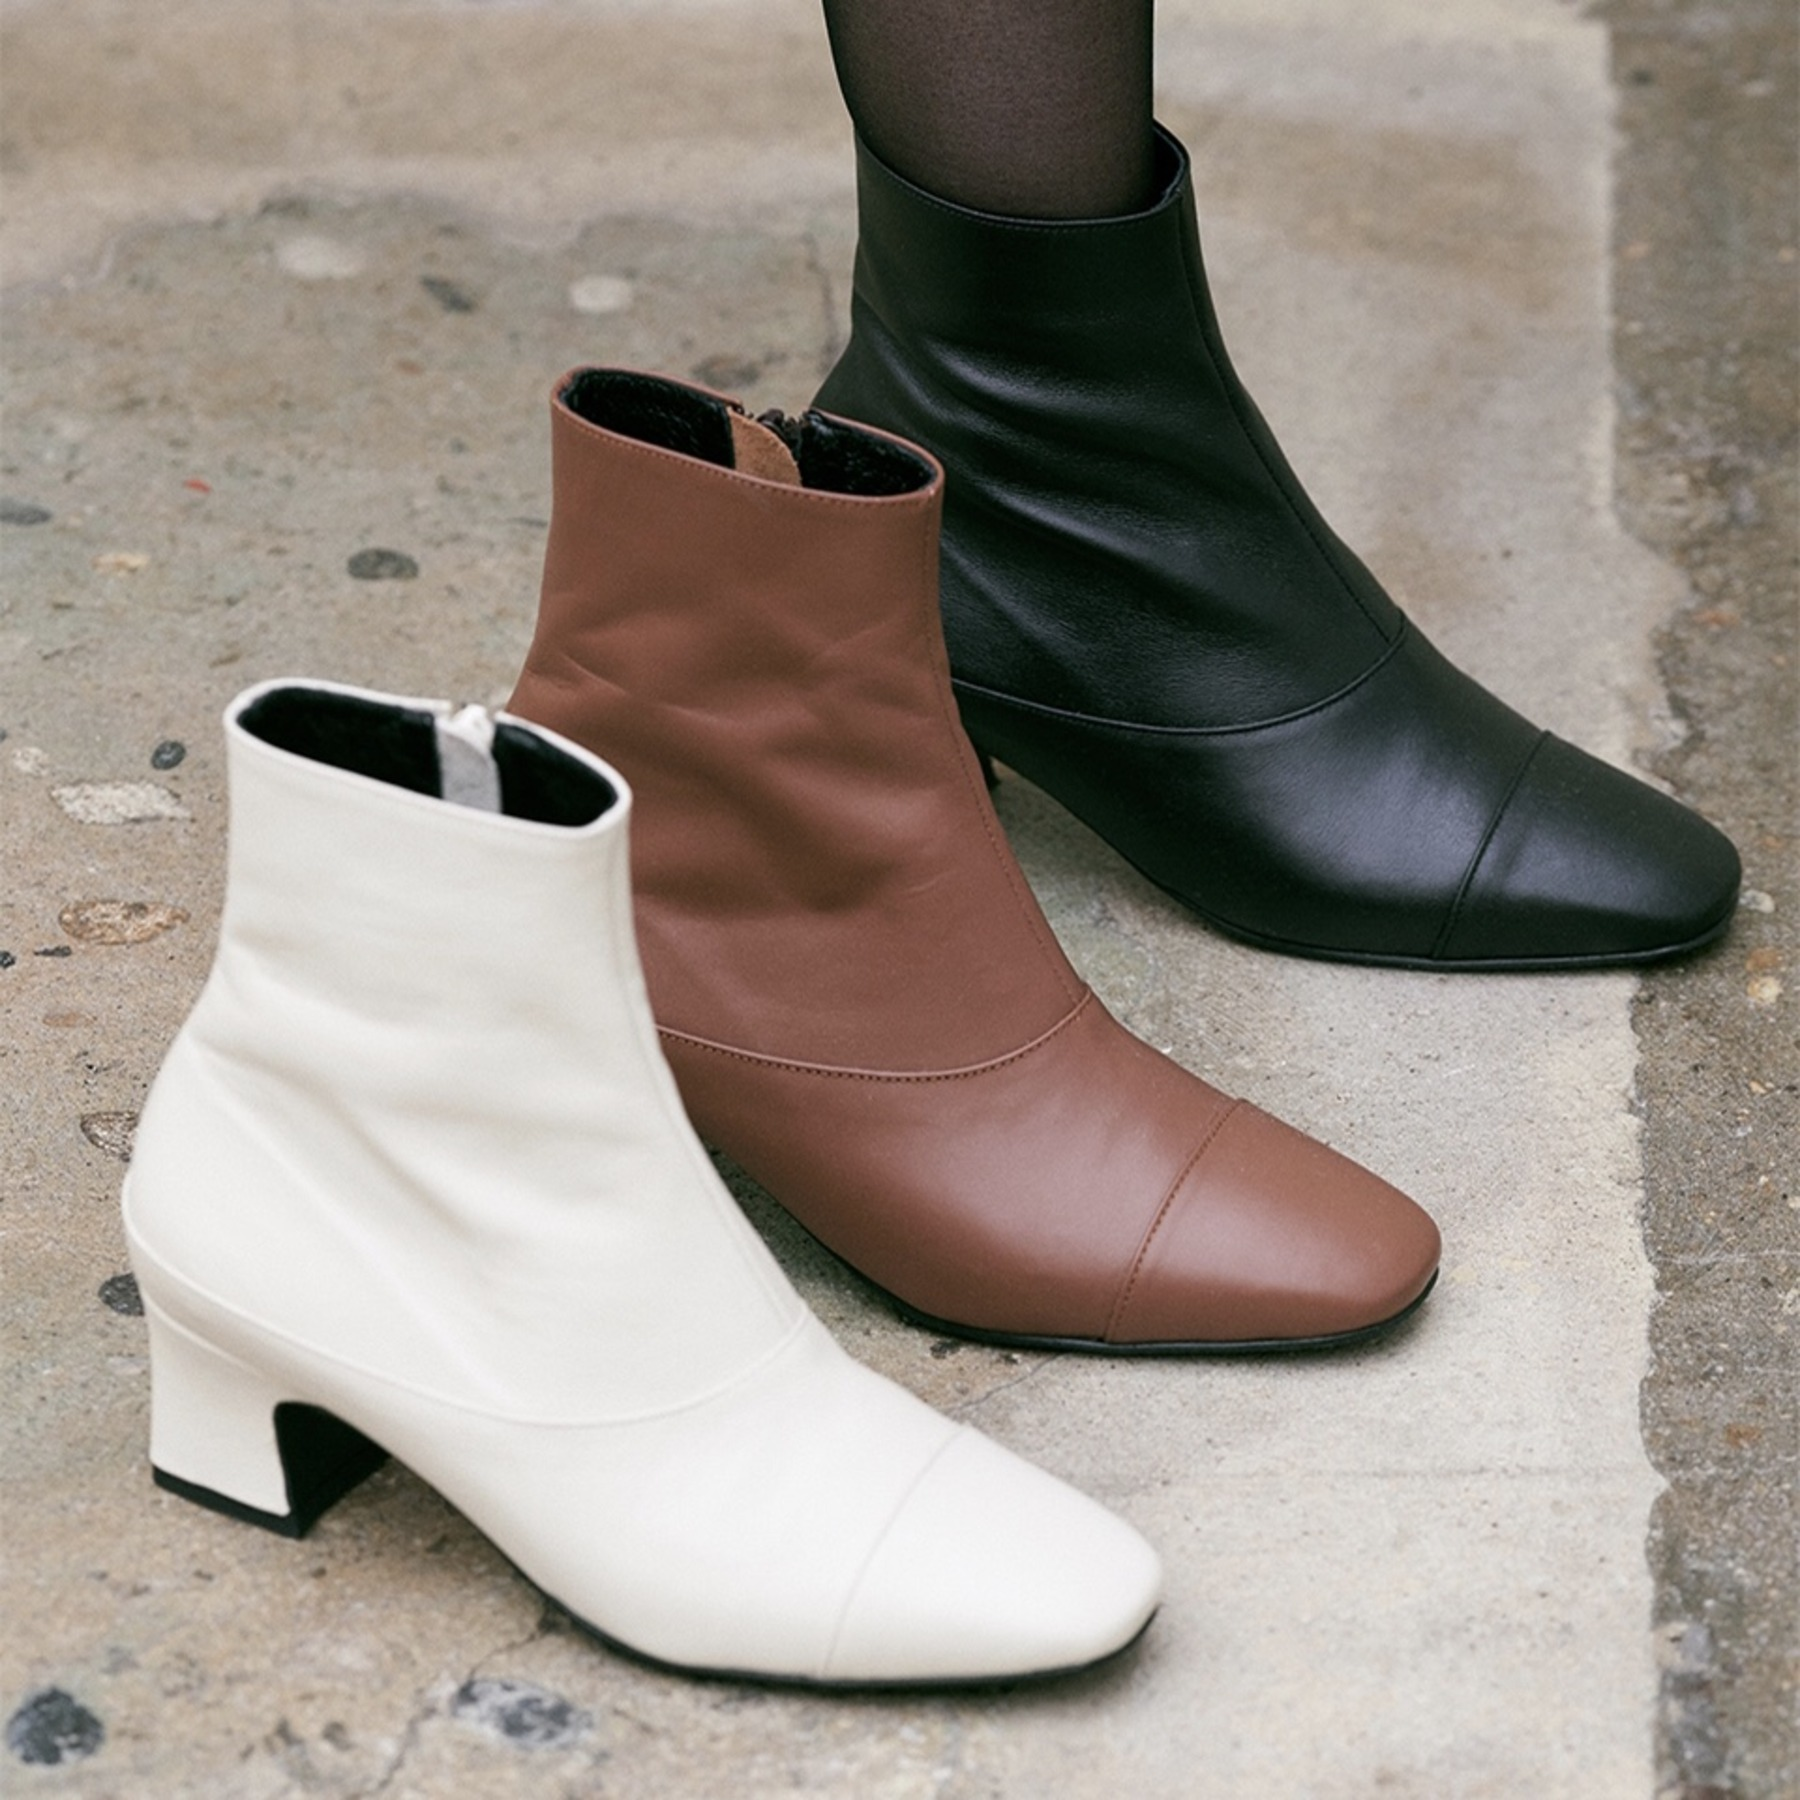 prina ankle boots(3 color)